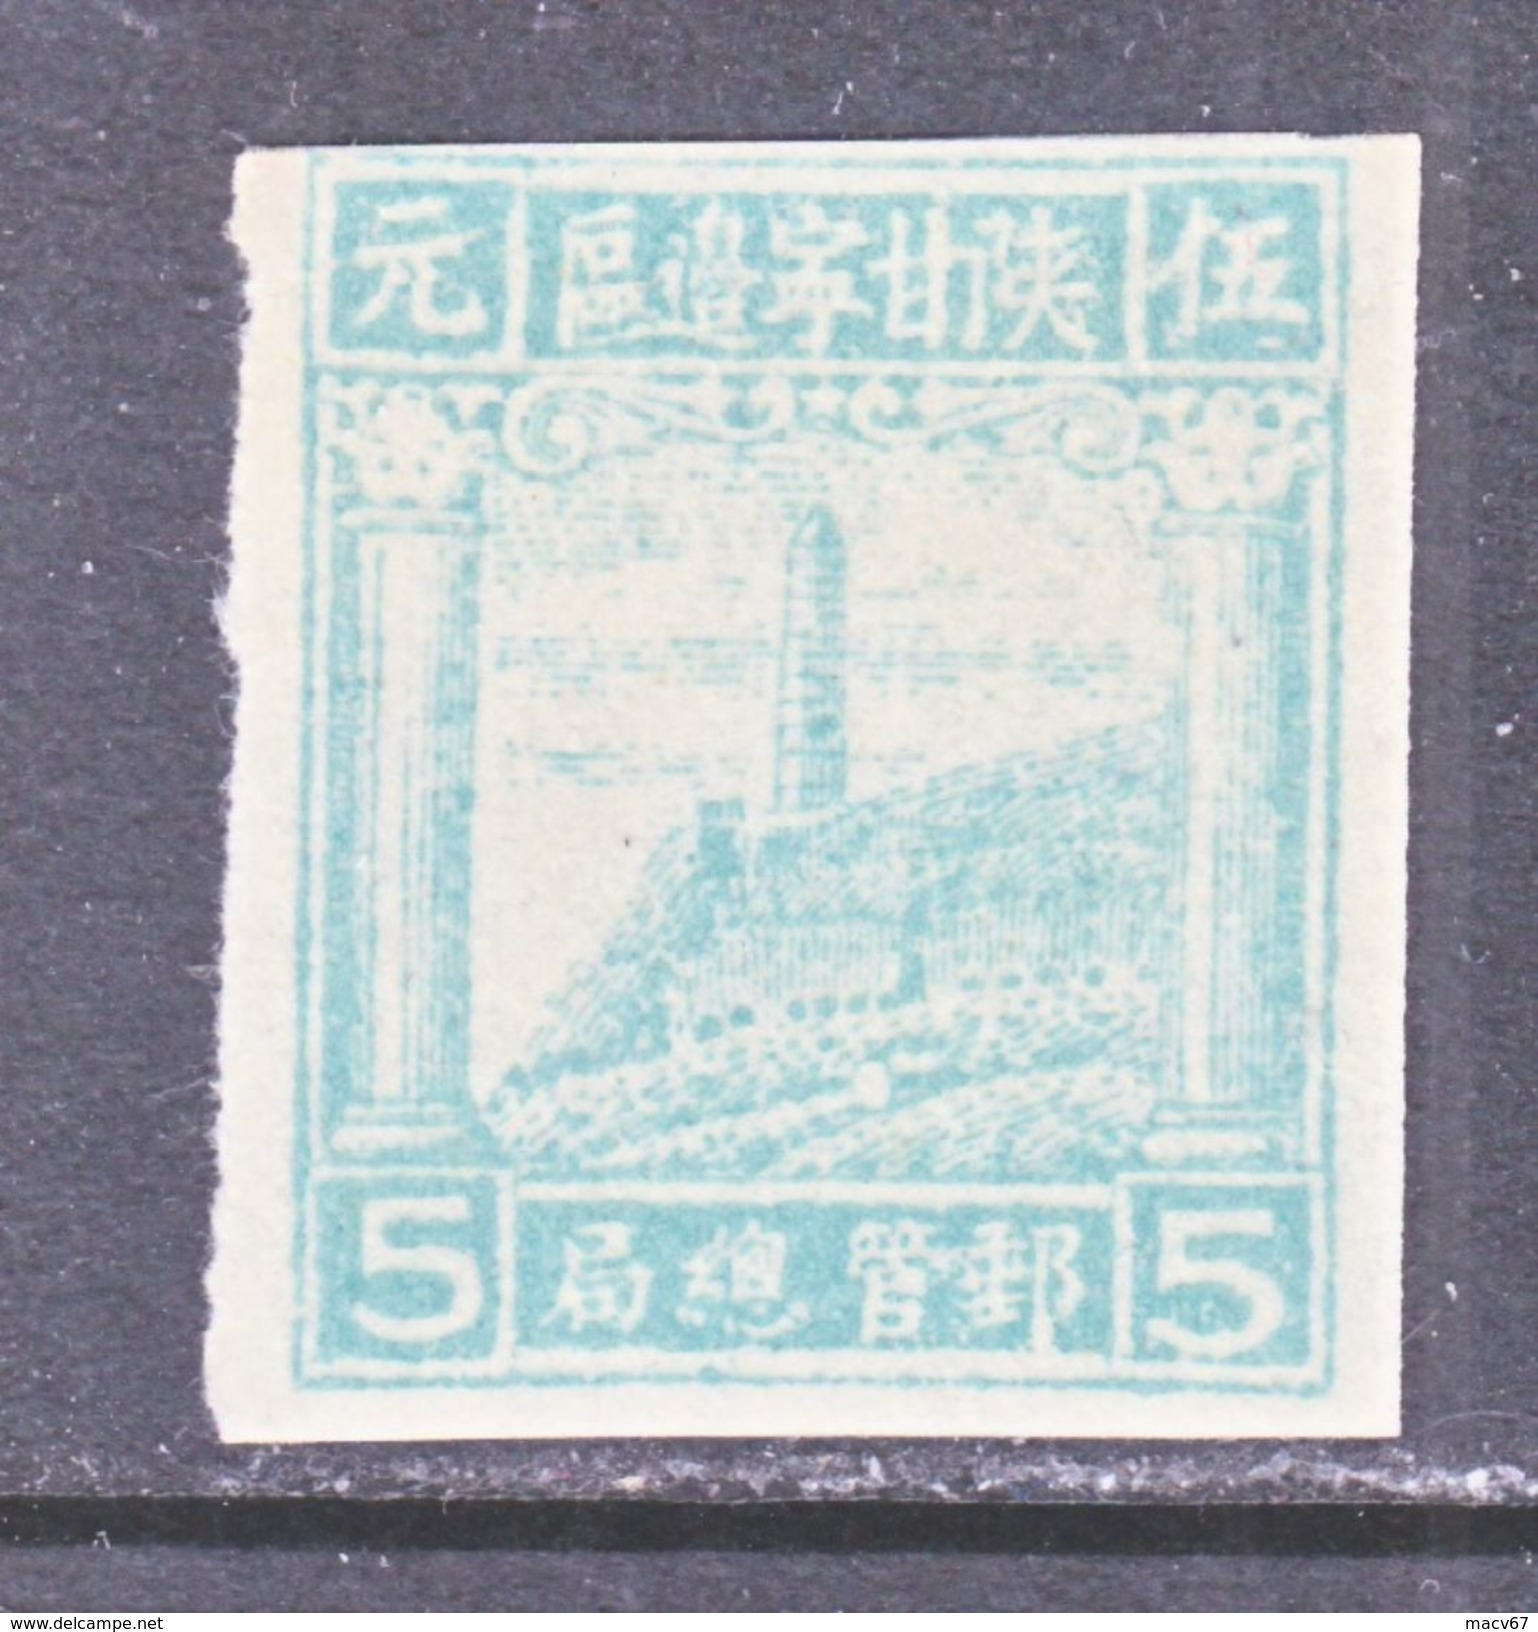 PRC  LIBERATED AREA  NORTH-WEST  4L 28  * - Western-China 1949-50